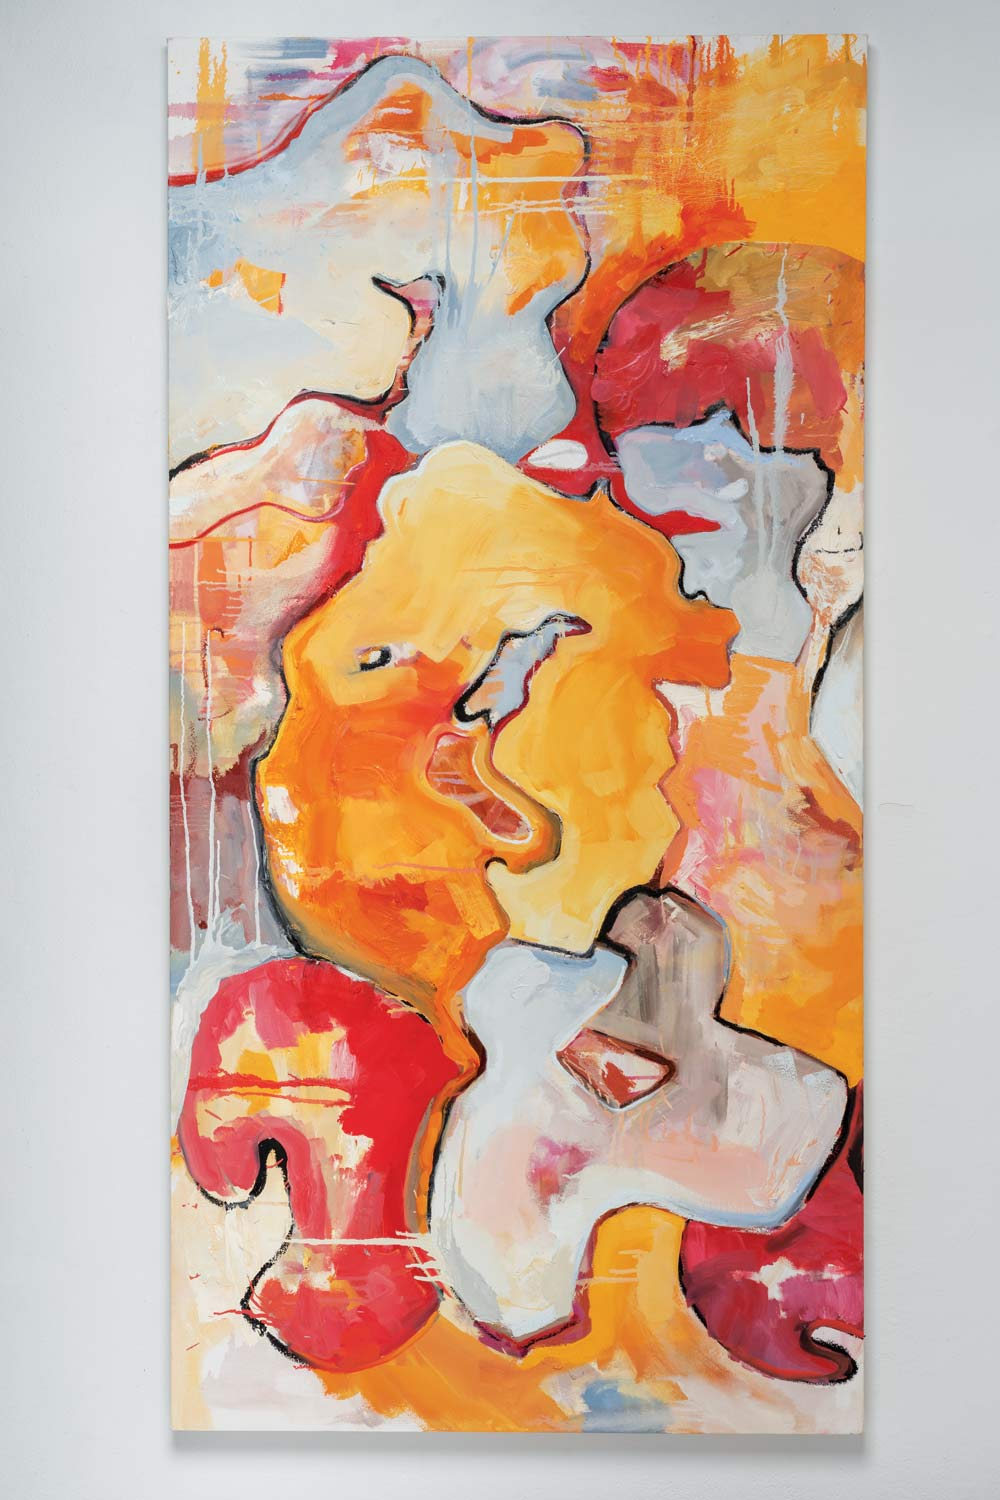 Abigail Cipar's abstract art with red, orange and white elements